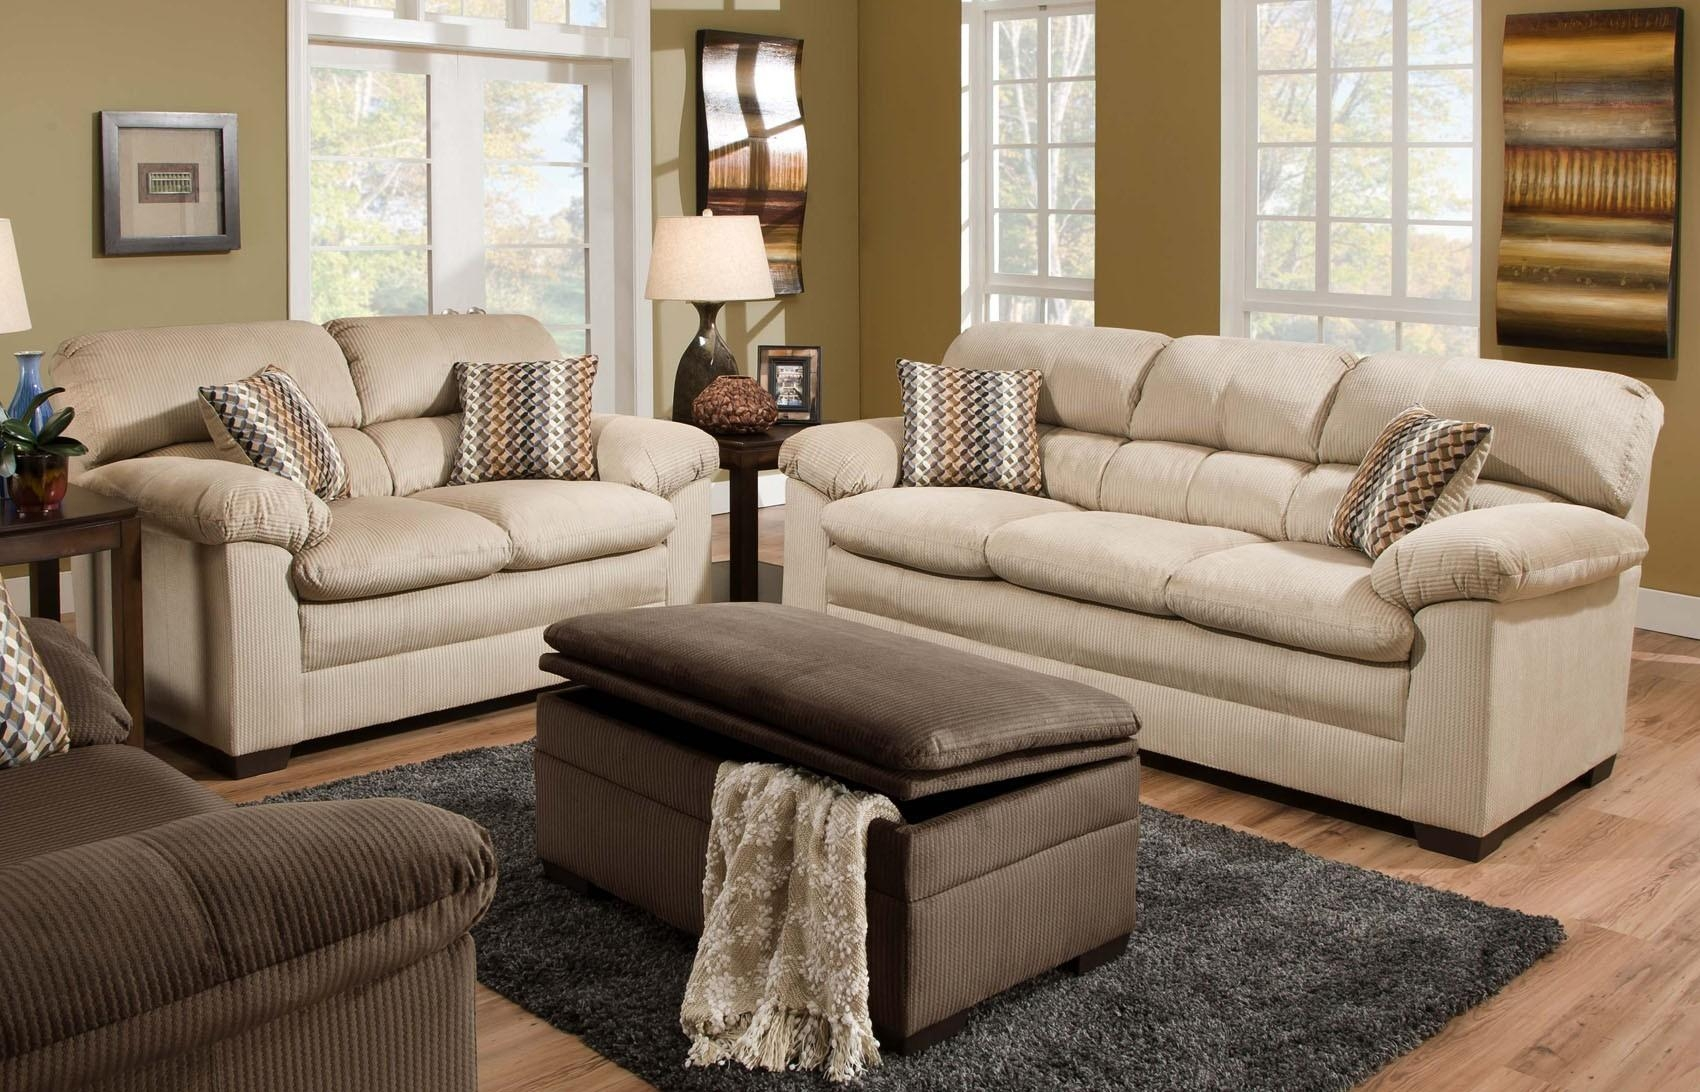 Lakewood Oversized Sofa Loveseat Set Beige Orange County Ca In Sofas Orange County (Image 3 of 20)